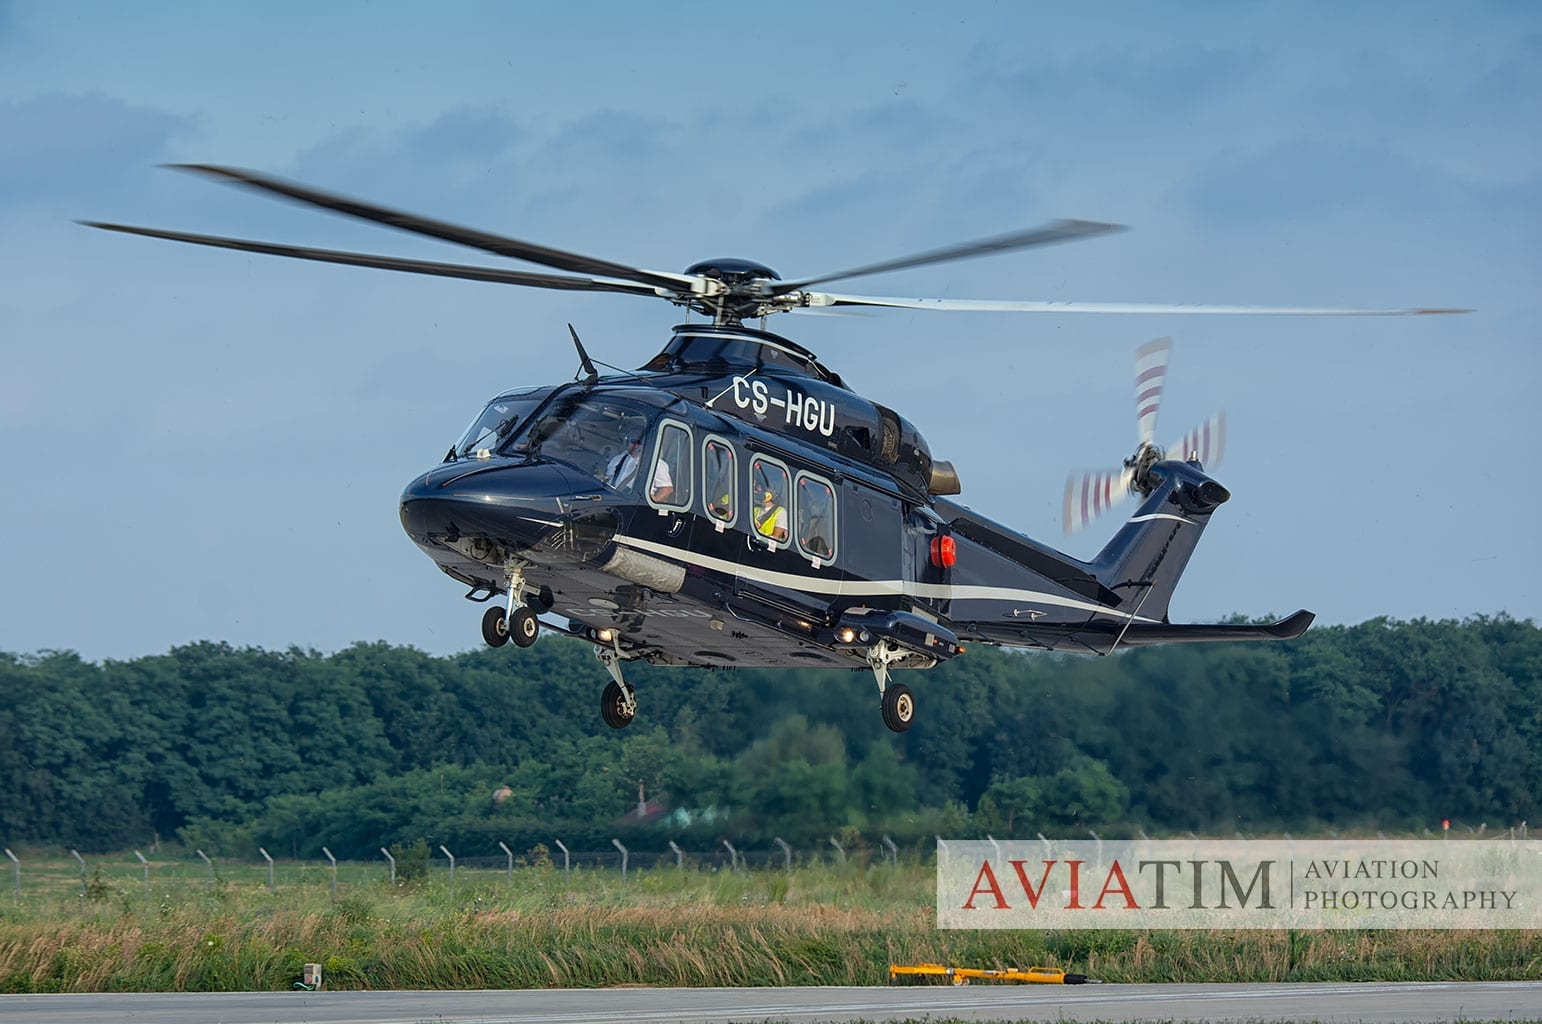 Aeromania Agusta Westland AW139 Helicopter Gallery